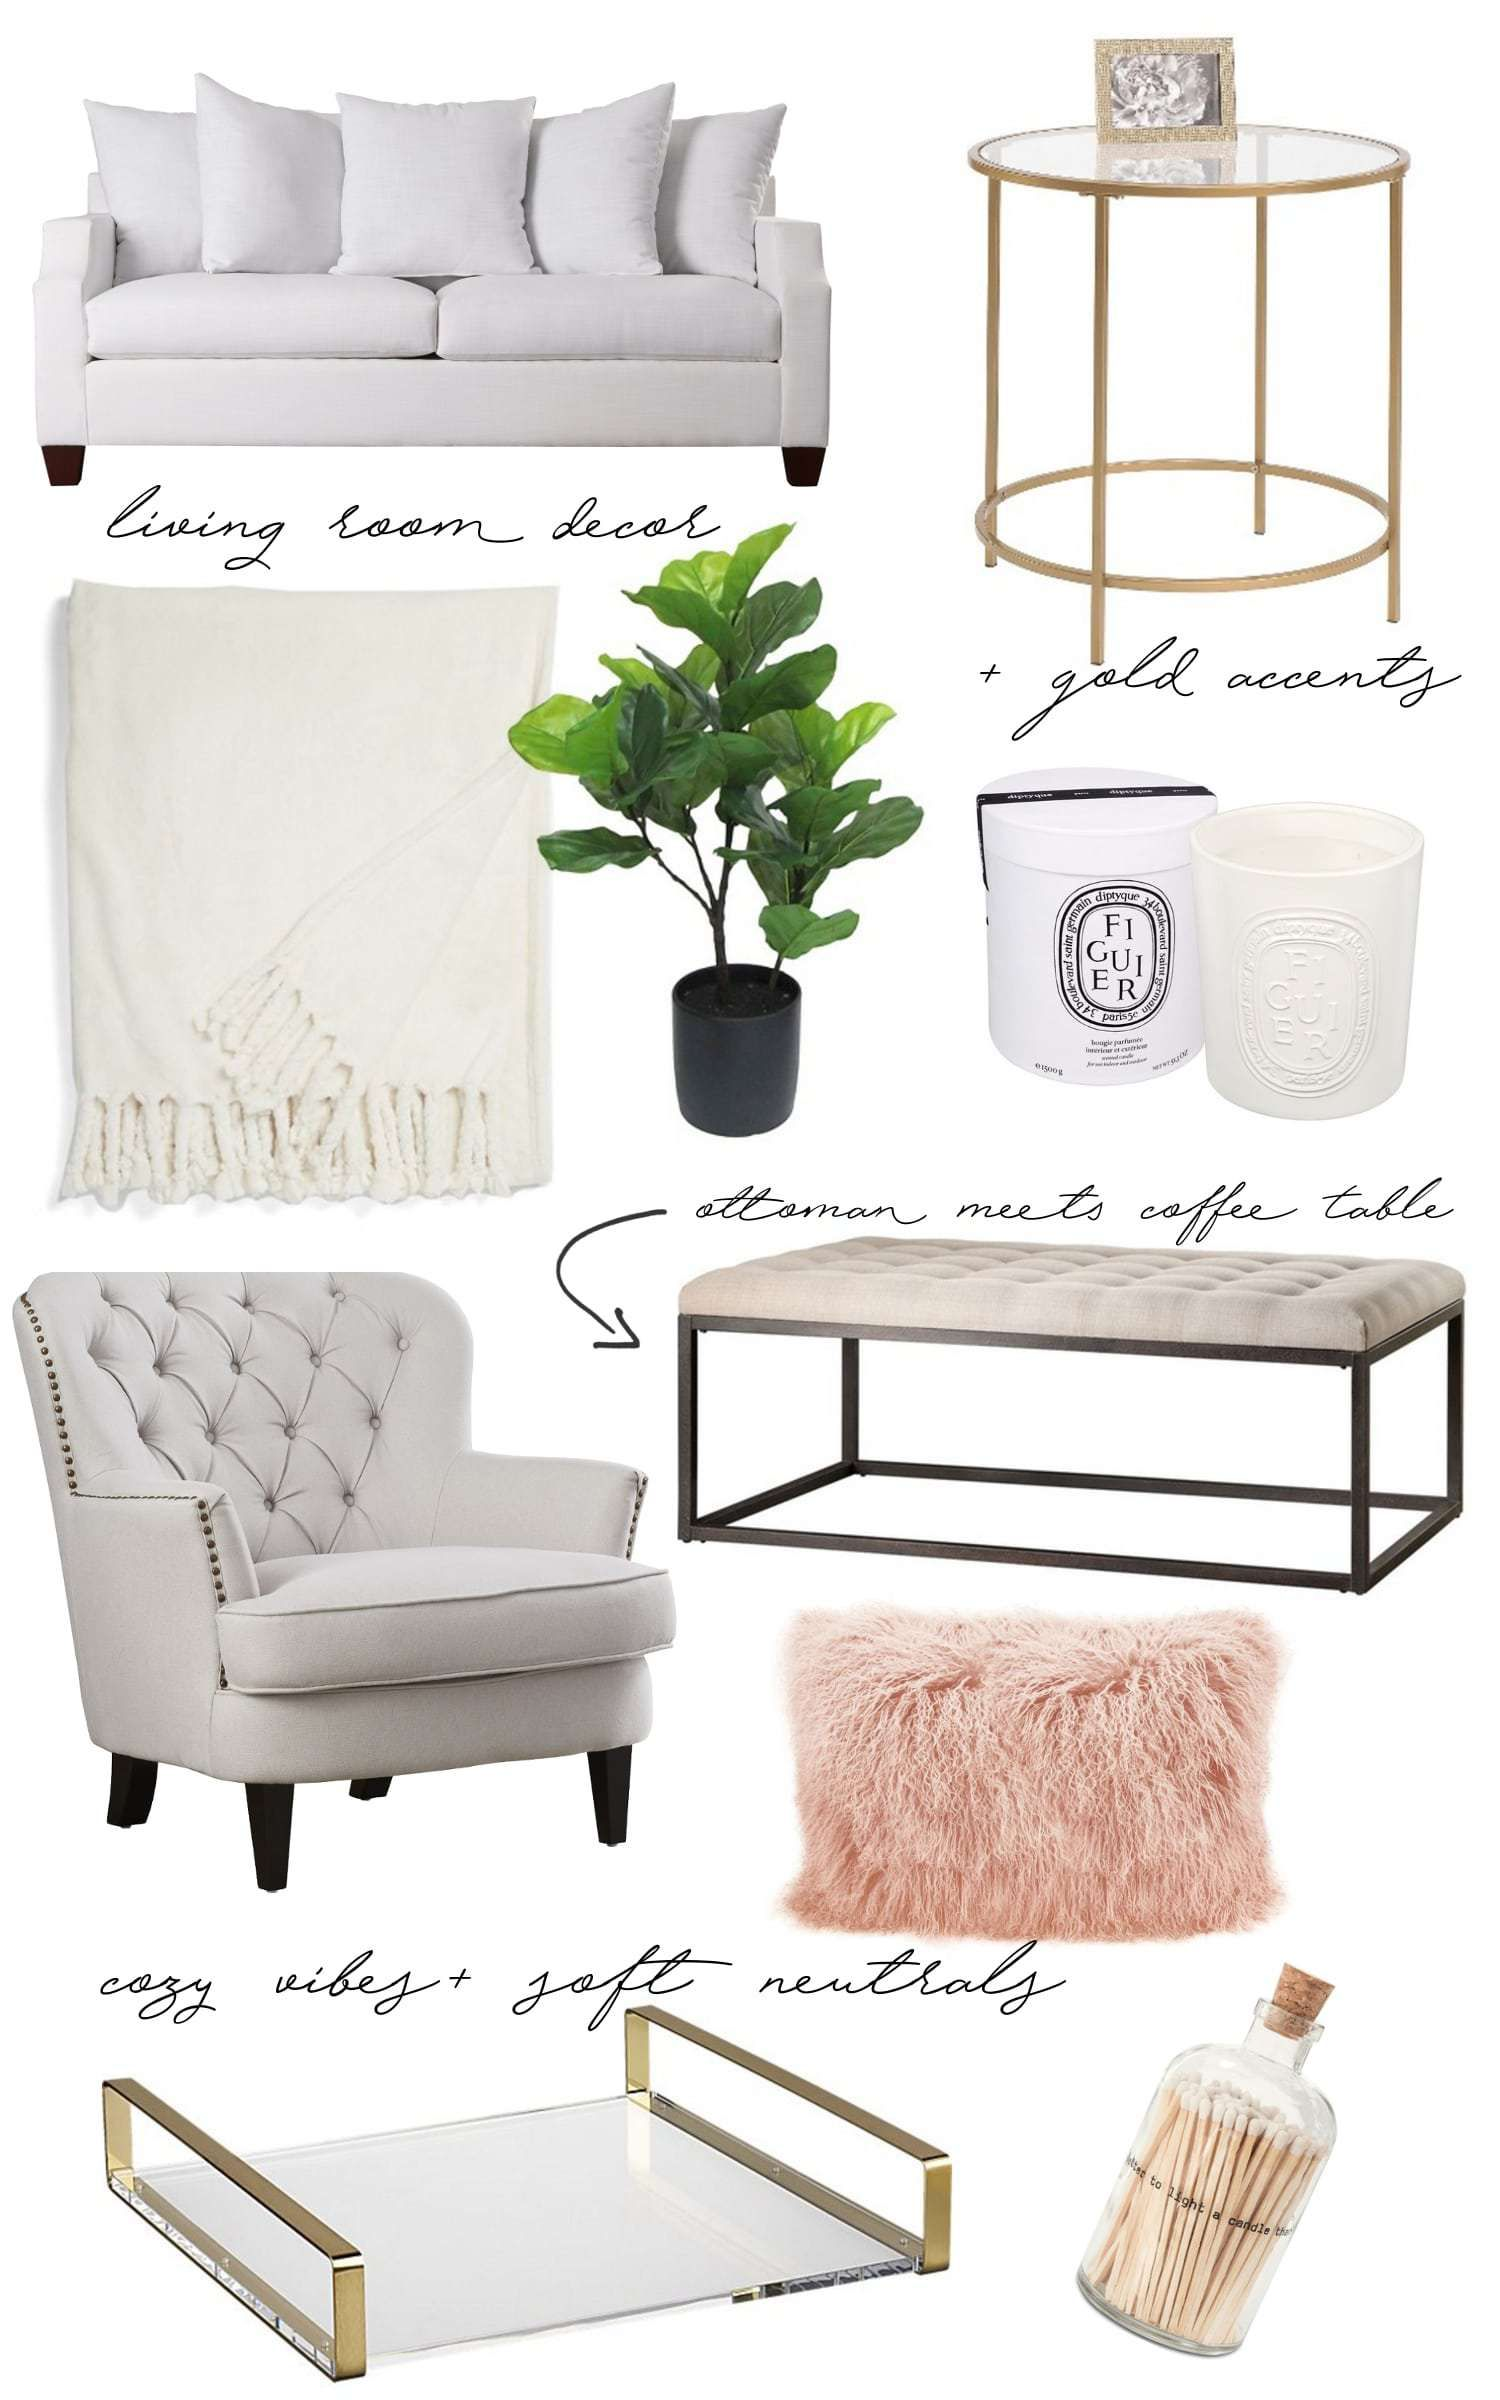 Home Decor Wish List: Fancy Things Living Room | Mood boards, Living ...